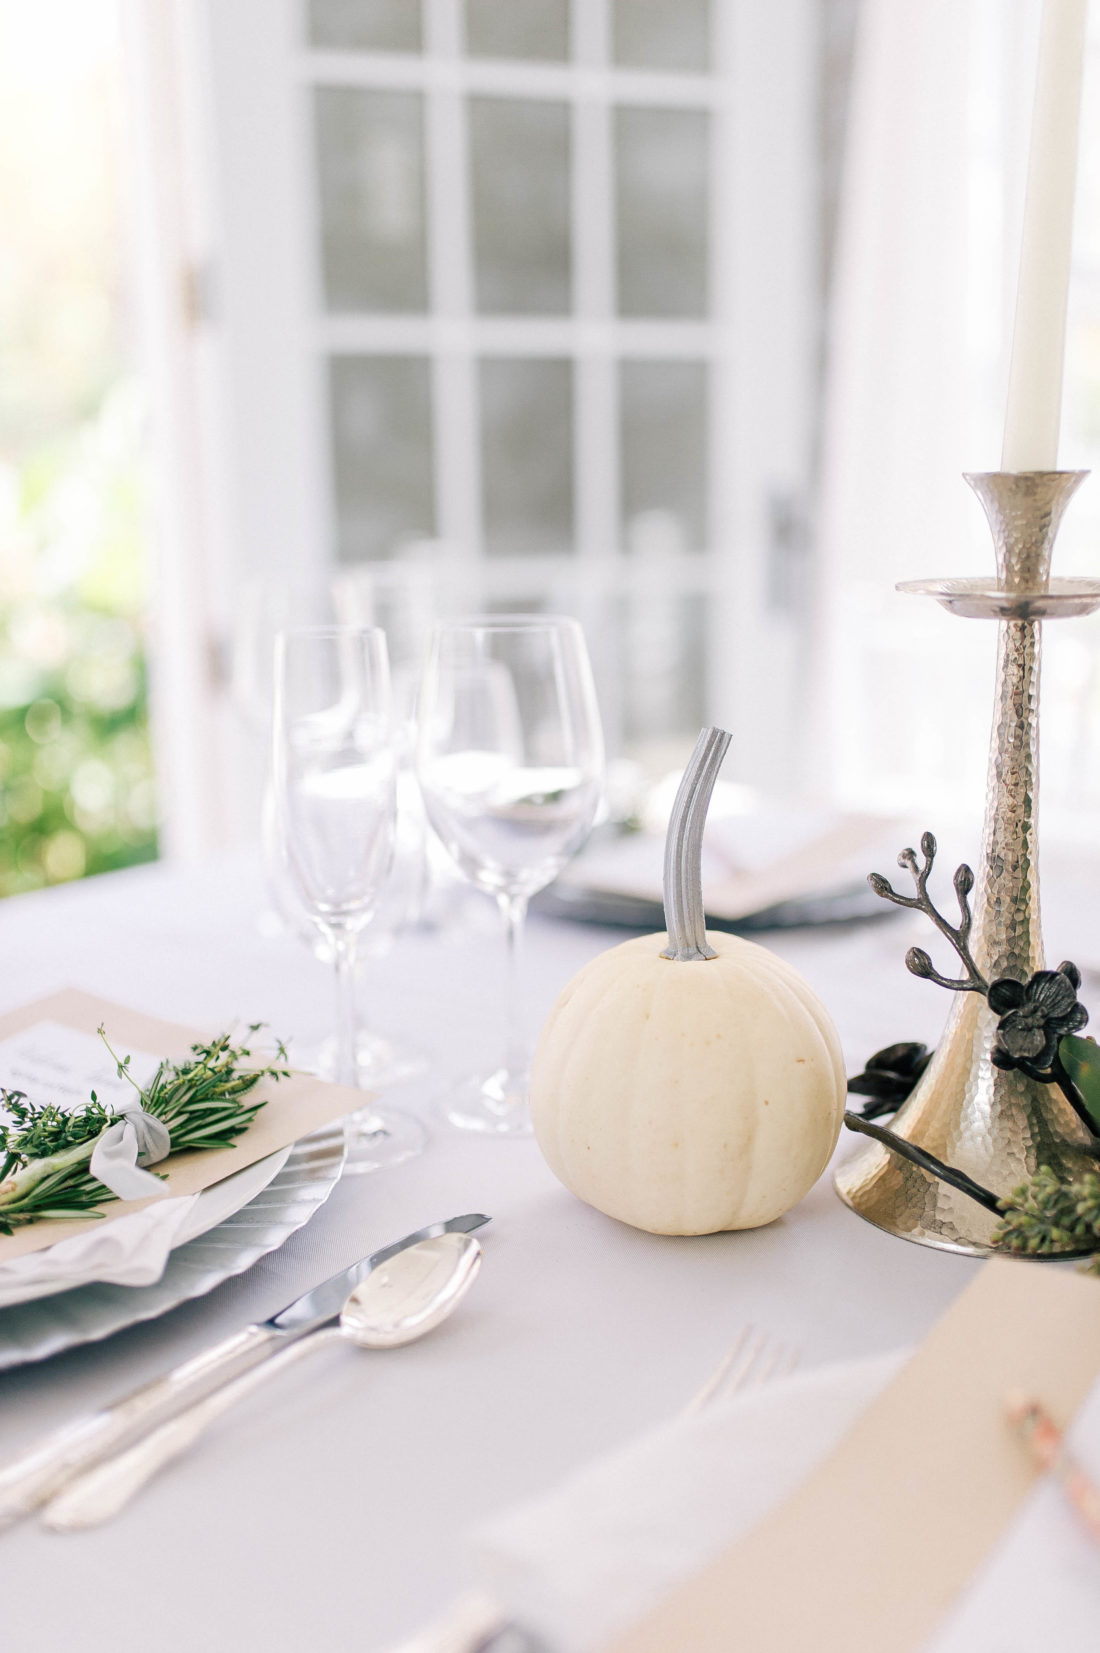 A white pumpkin with a painted silver stem on the Friendsgiving table at Eva Amurri Martino's Connecticut home